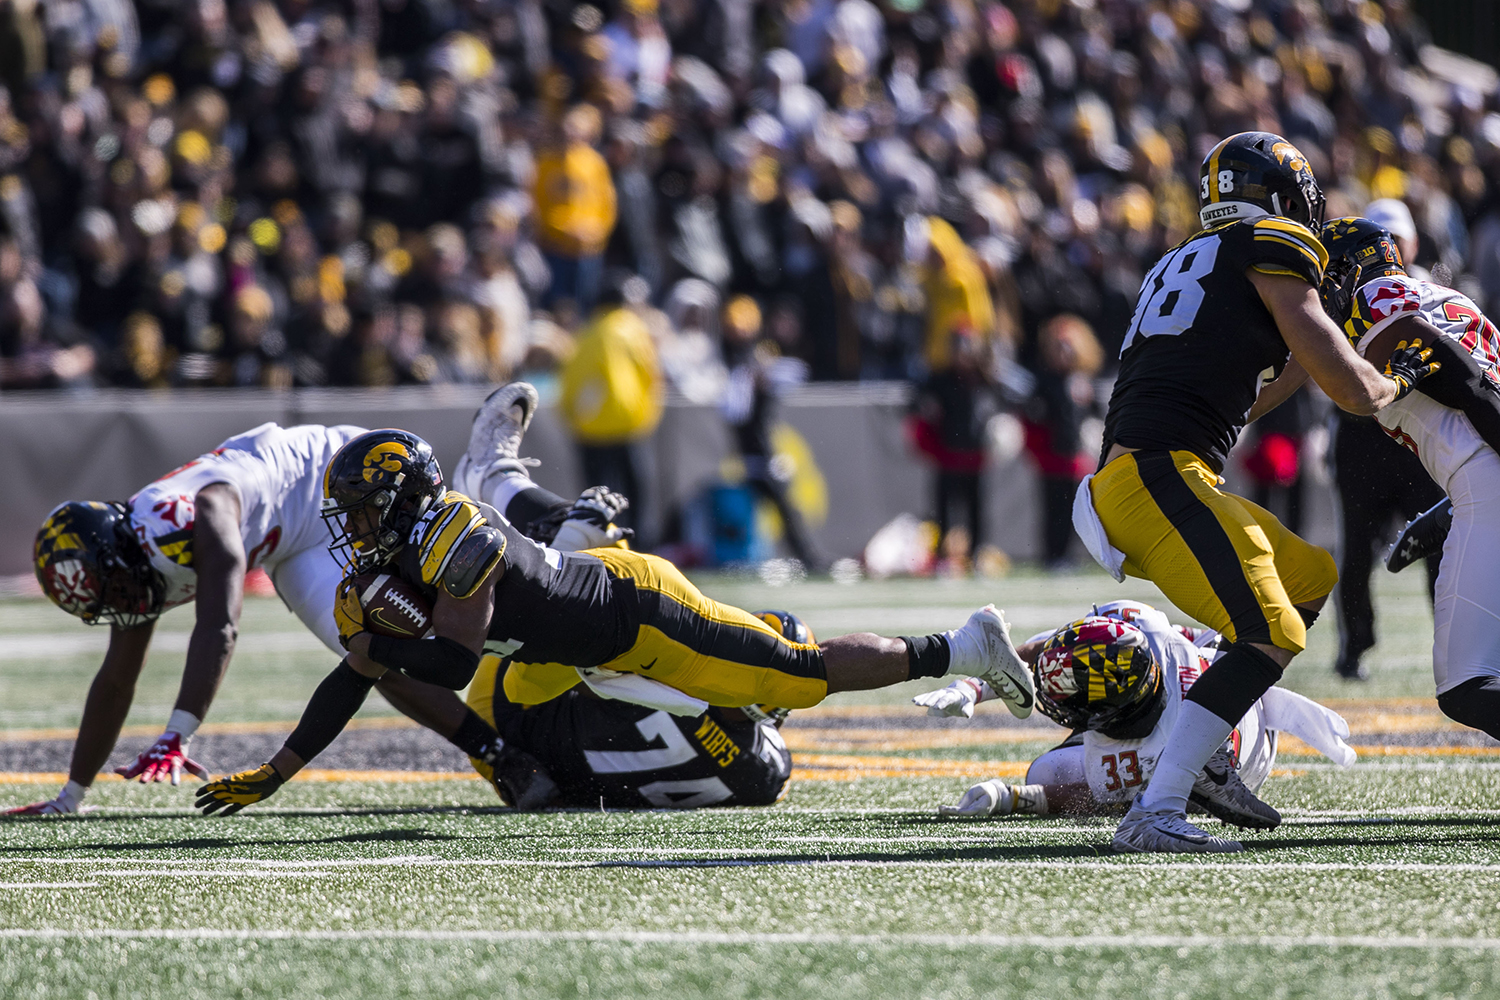 Iowa+running+back+Ivory+Kelly-Martin+dives+with+the+ball+during+the+Iowa%2FMaryland+homecoming+football+game+at+Kinnick+Stadium+on+Saturday%2C+October+20%2C+2018.+The+Hawkeyes+defeated+the+Terrapins%2C+23-0.+